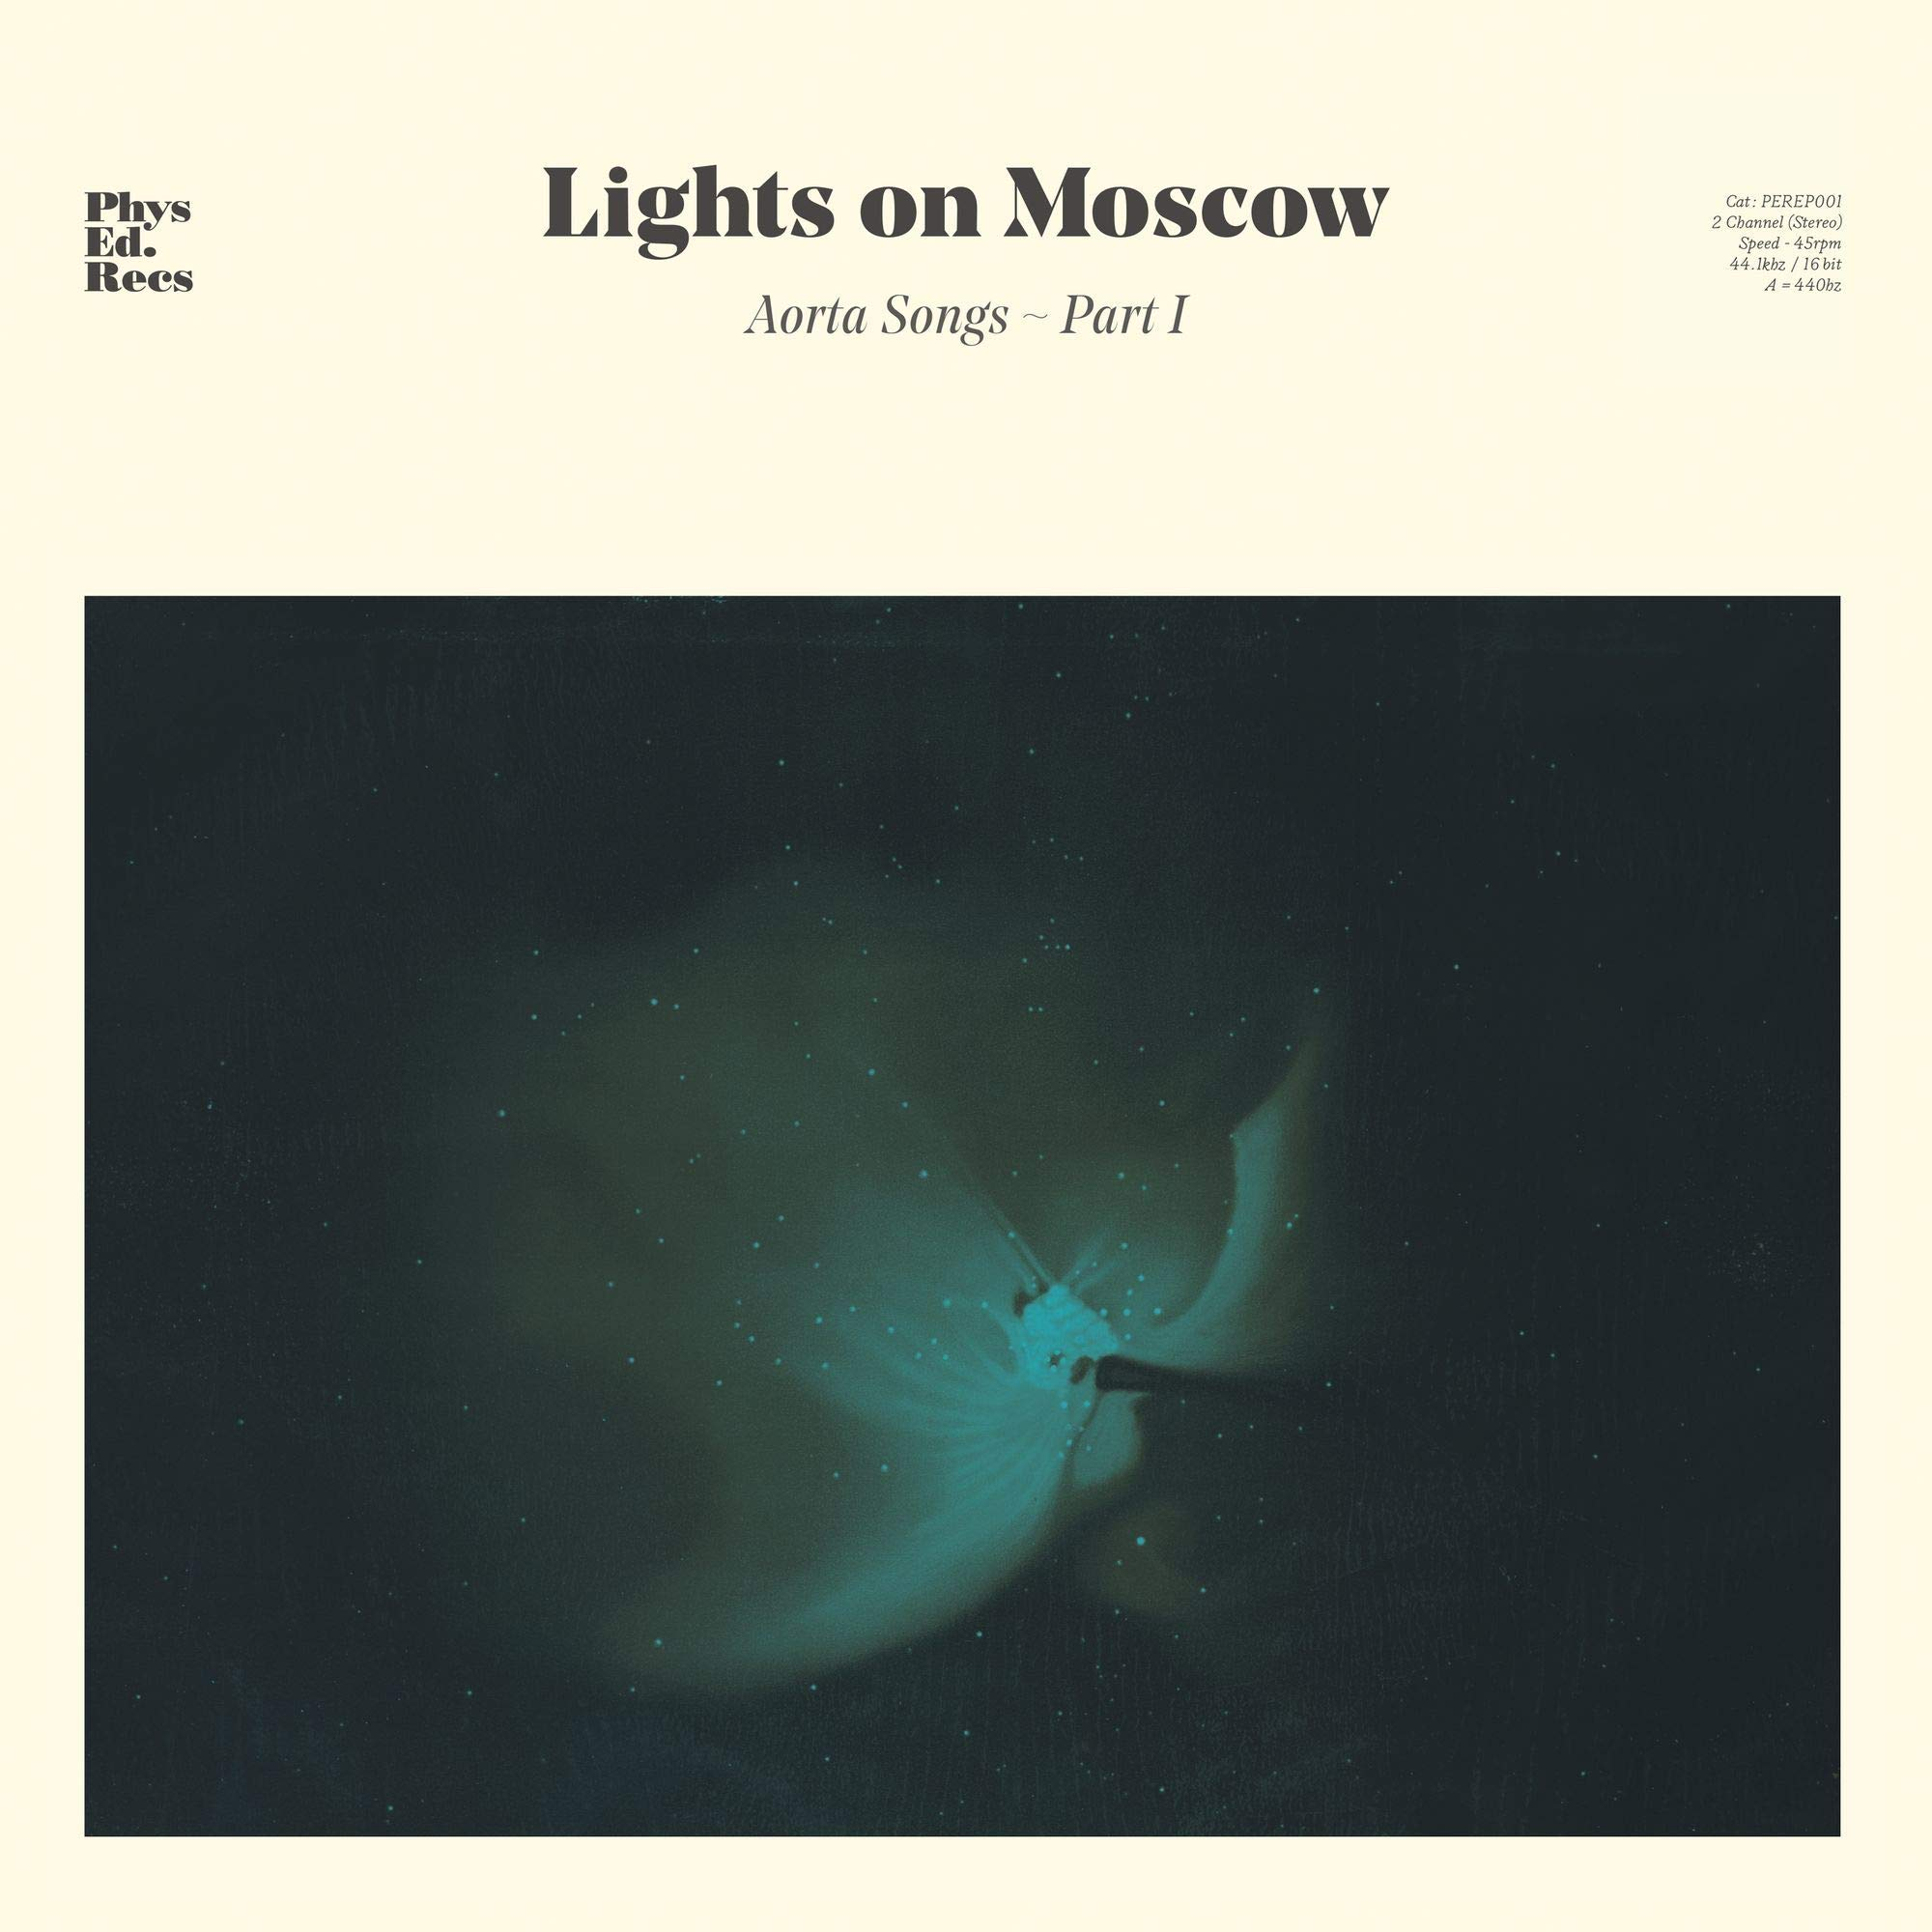 Vinilo : Lights on Moscow - Aorta Songs - Part 1 (LP Vinyl)